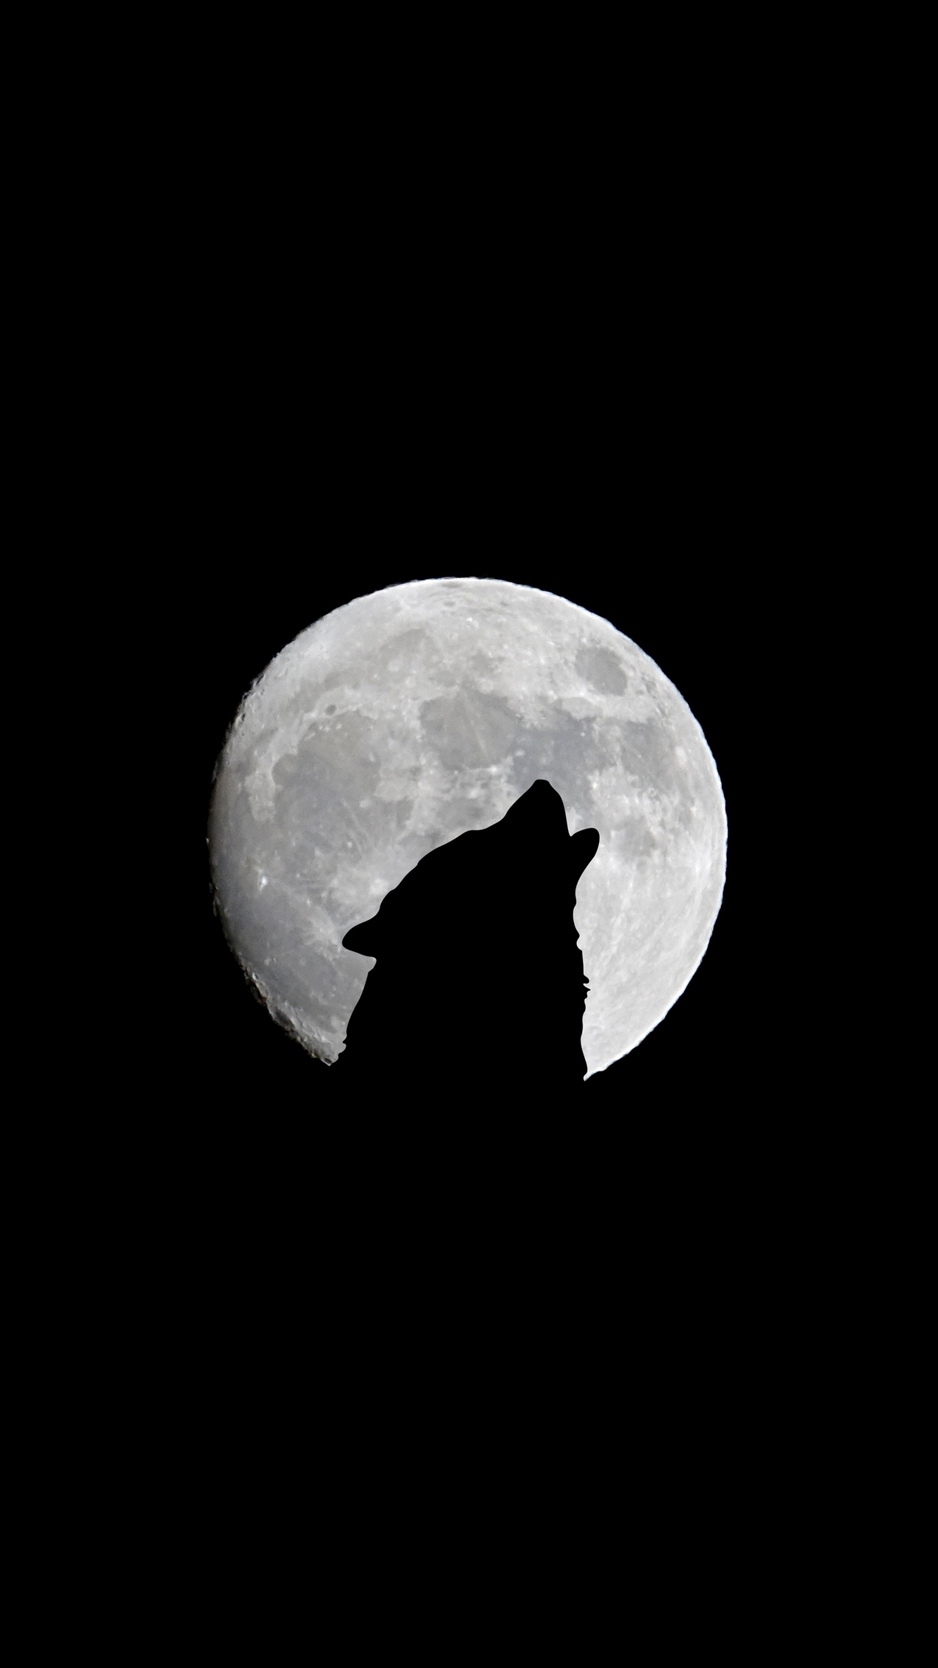 Wolf Backgrounds Iphone Posted By Samantha Peltier